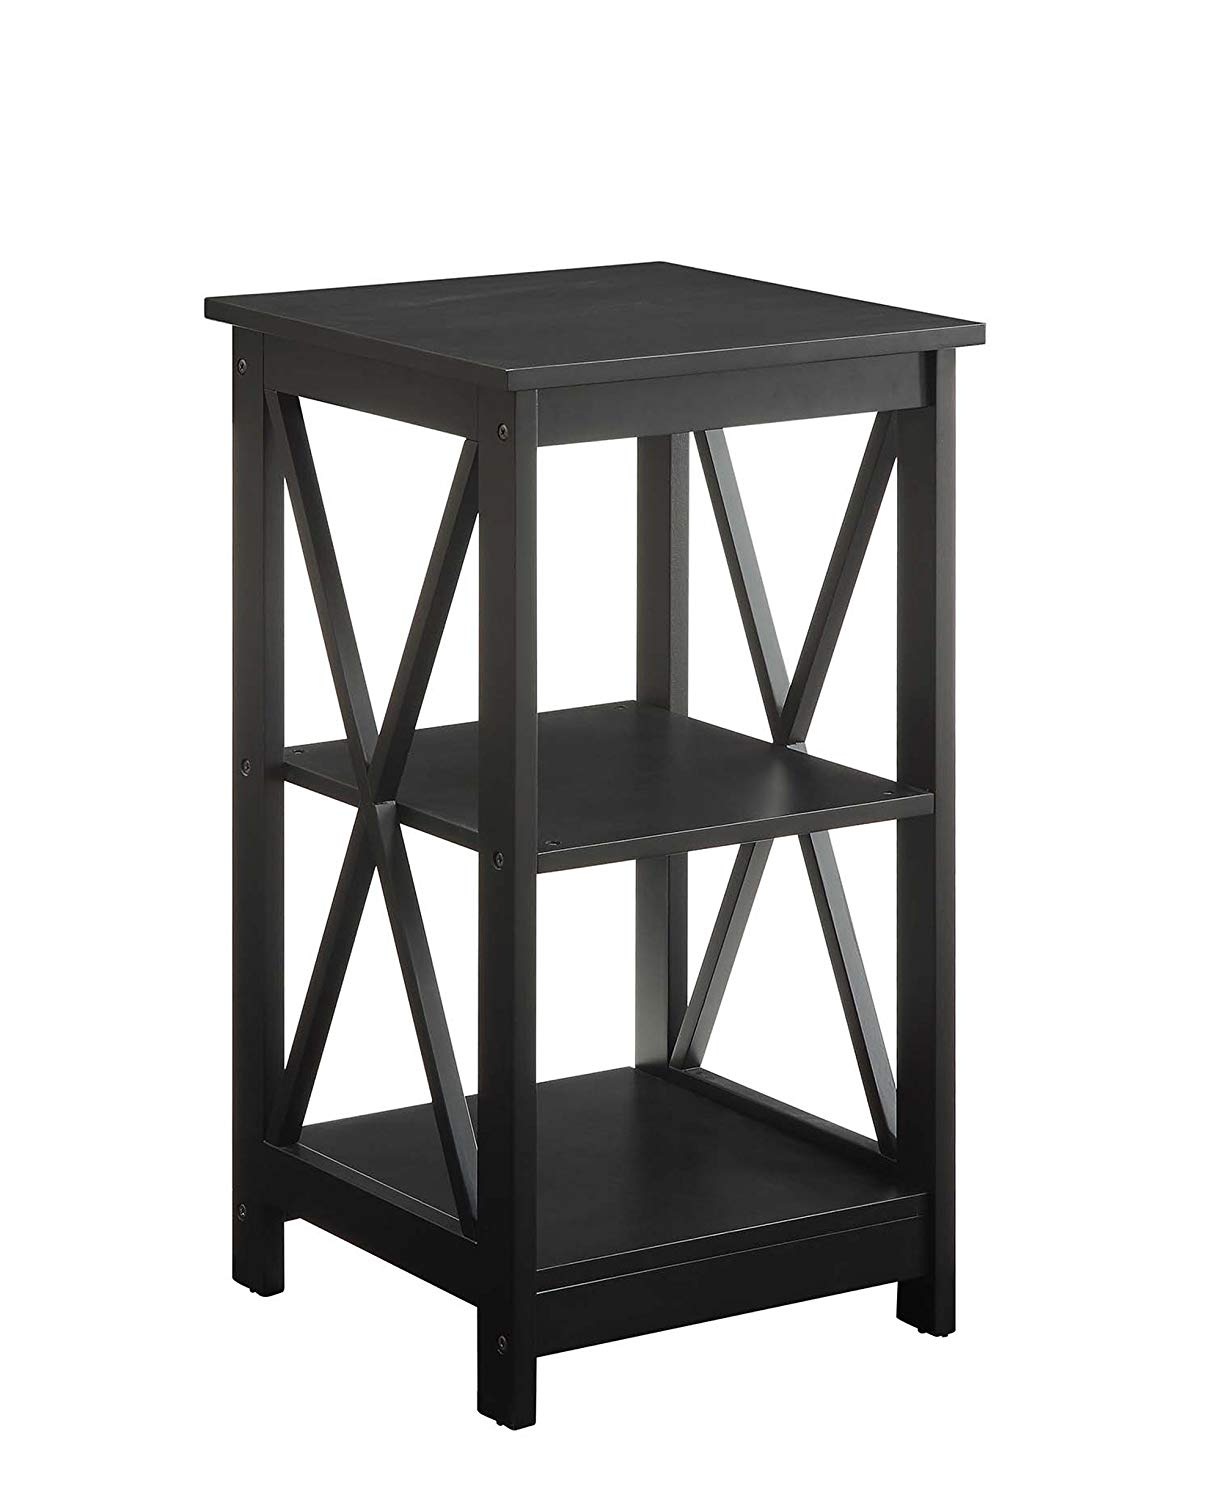 convenience concepts oxford end table black kitchen better homes and gardens accent rustic gray dining foldable pedestal bedside furniture occasional tables garden clearance